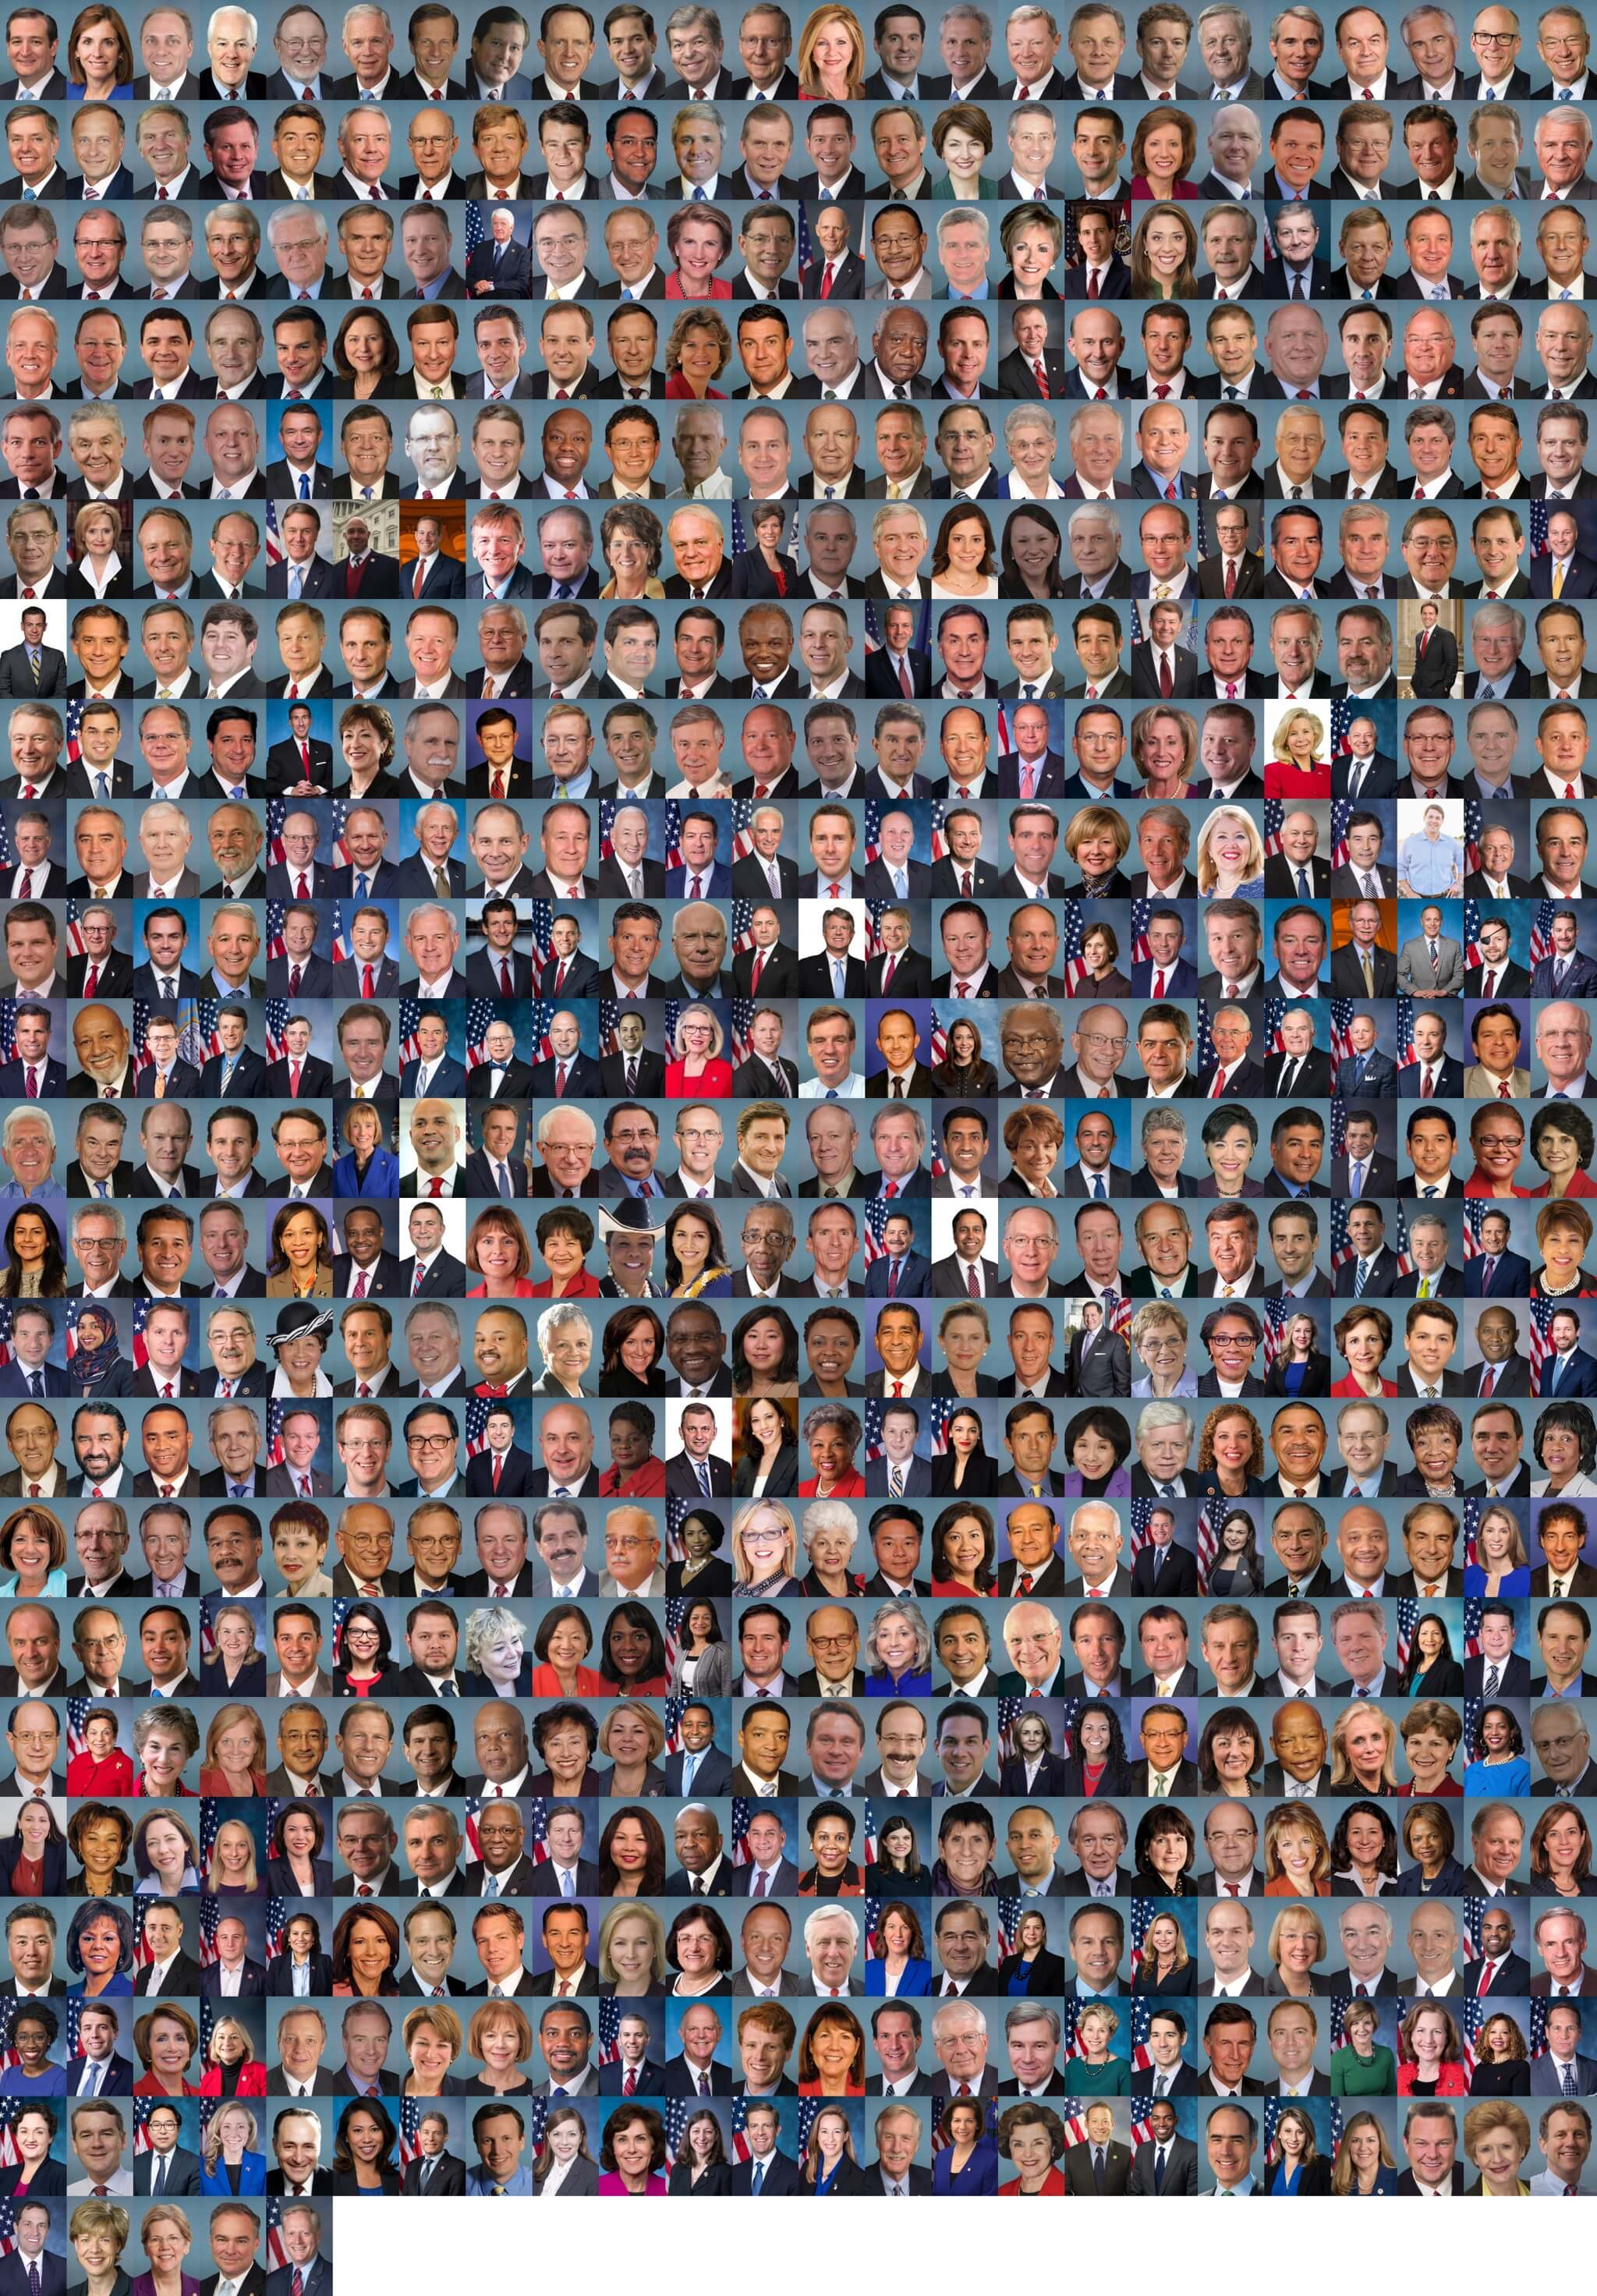 Grid of every Congressperson's portraits